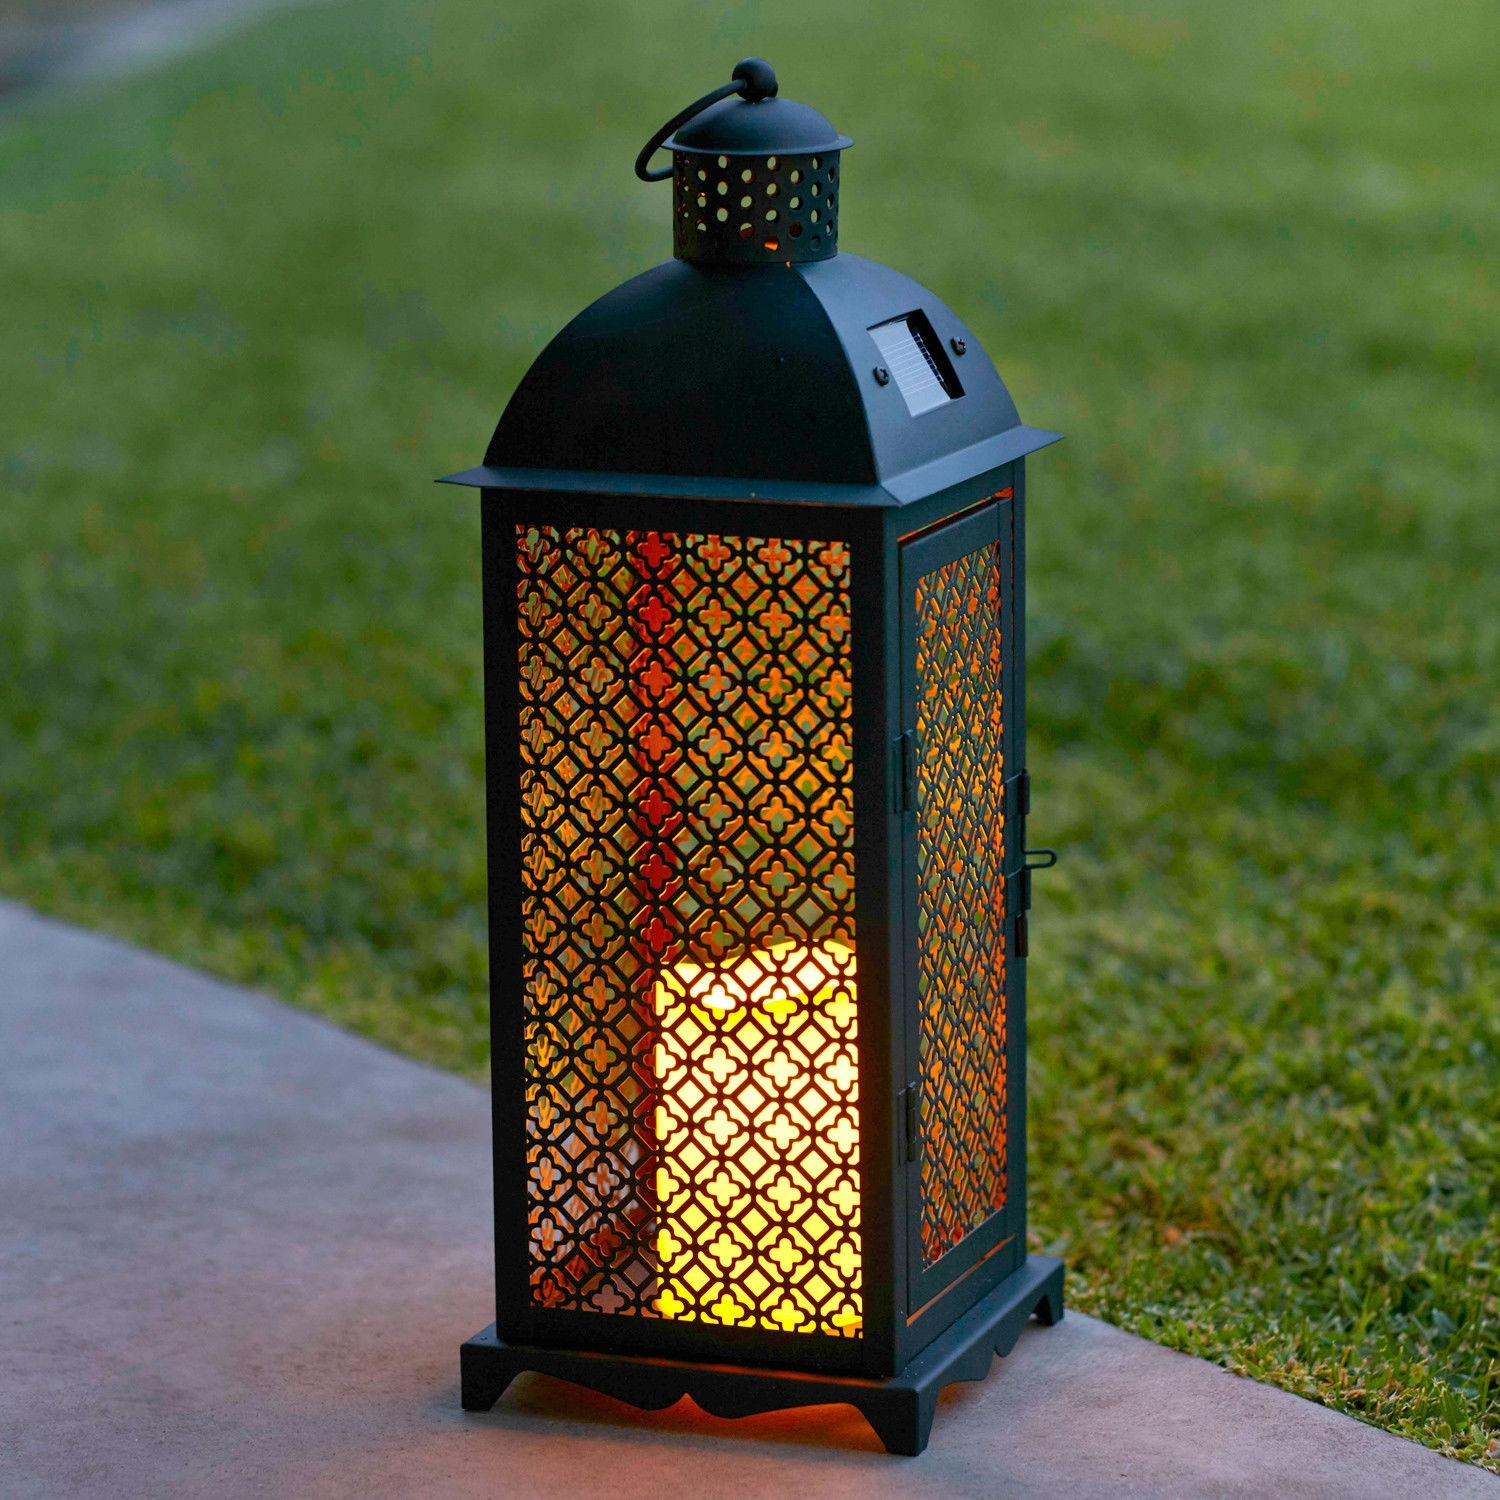 Moroccan Solar Powered Led Garden Outdoor Flameless Candle Lantern intended for Outdoor Lanterns With Flameless Candles (Image 12 of 20)